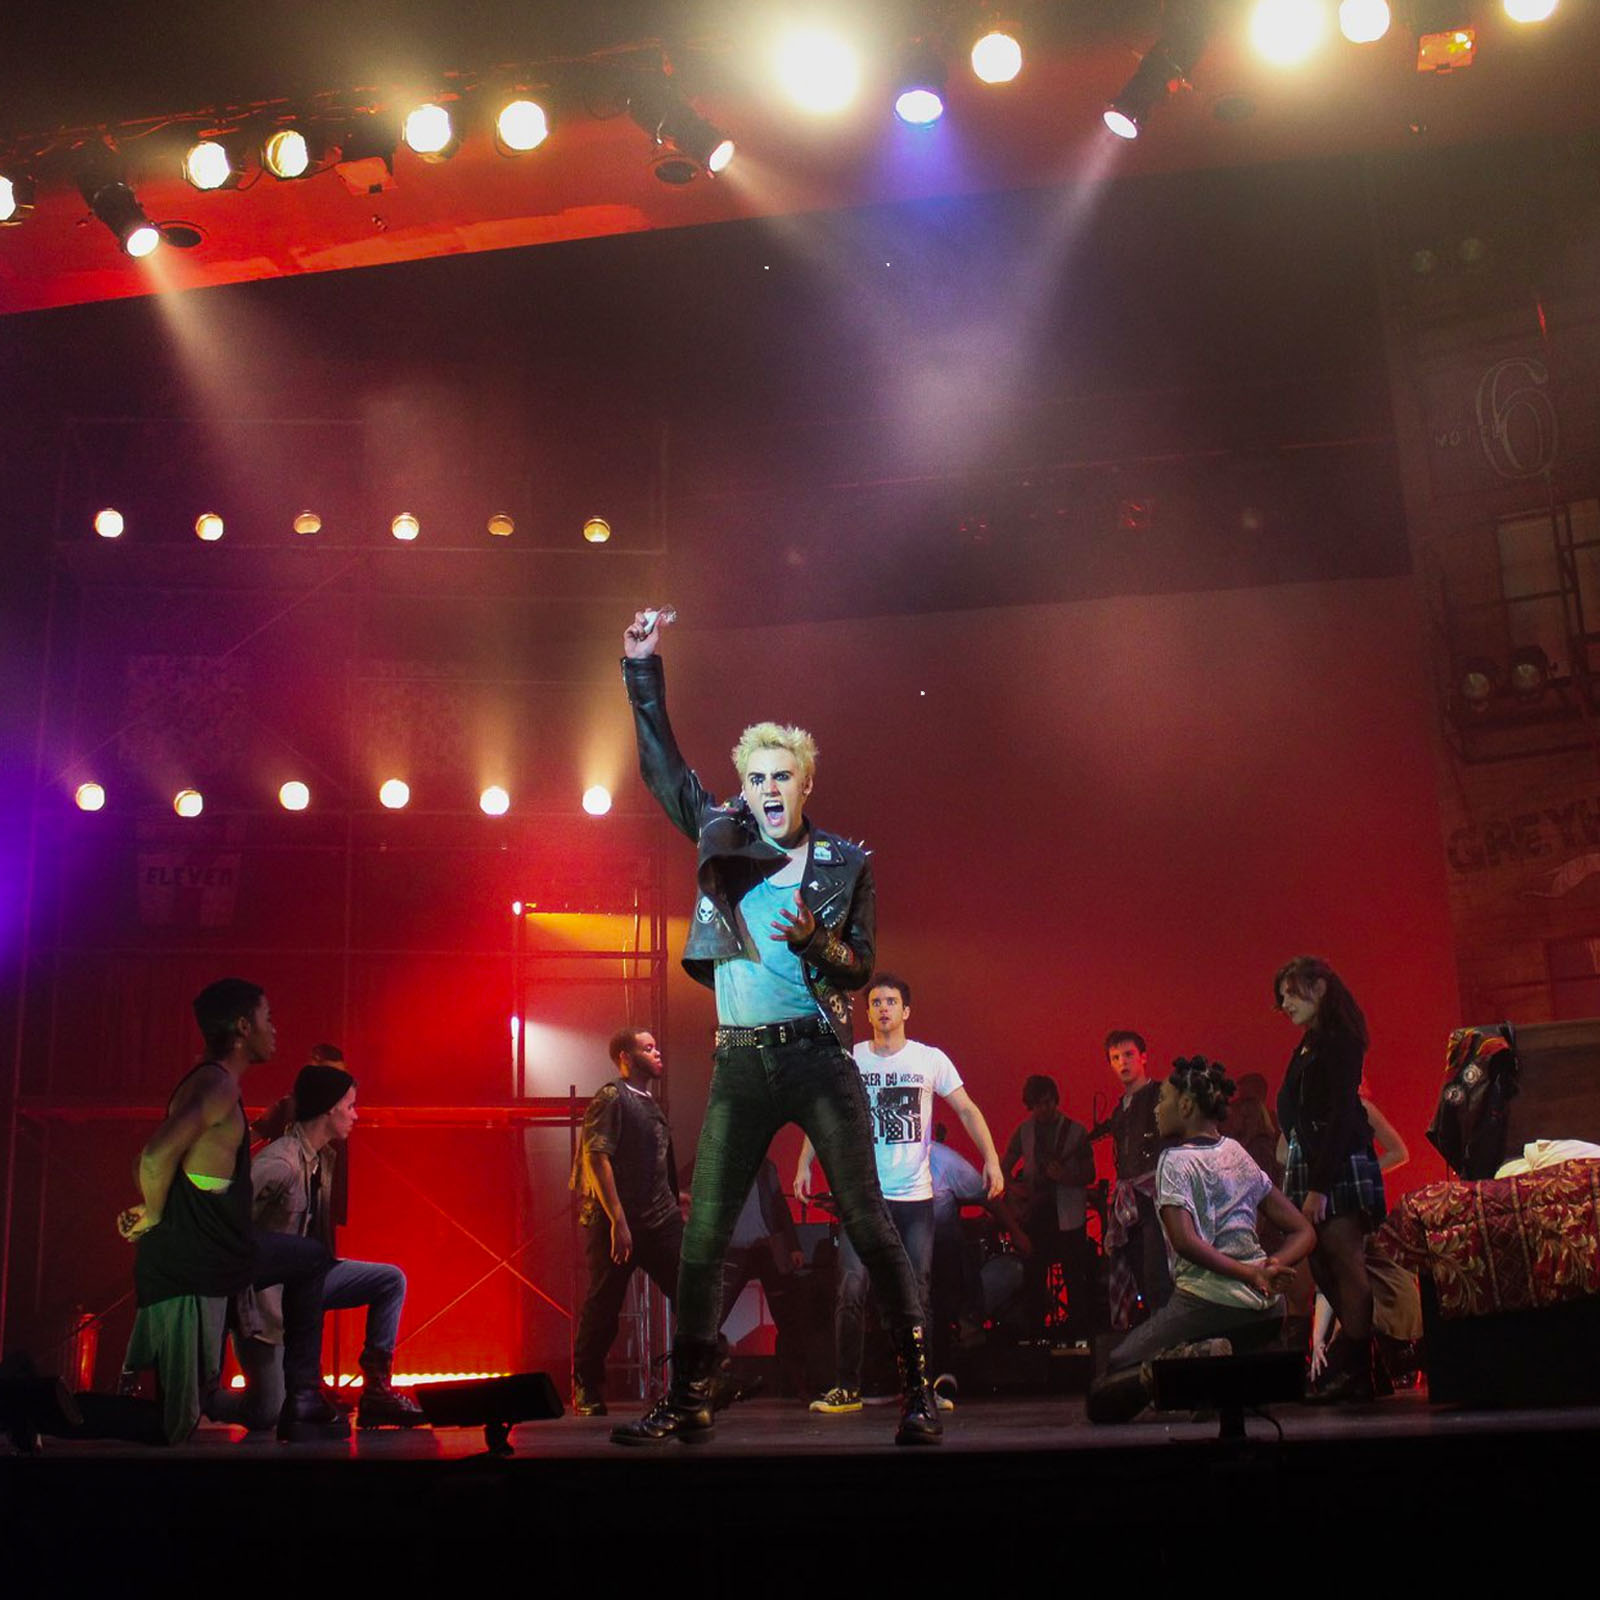 American Idiot- Man centerstage with fist raised